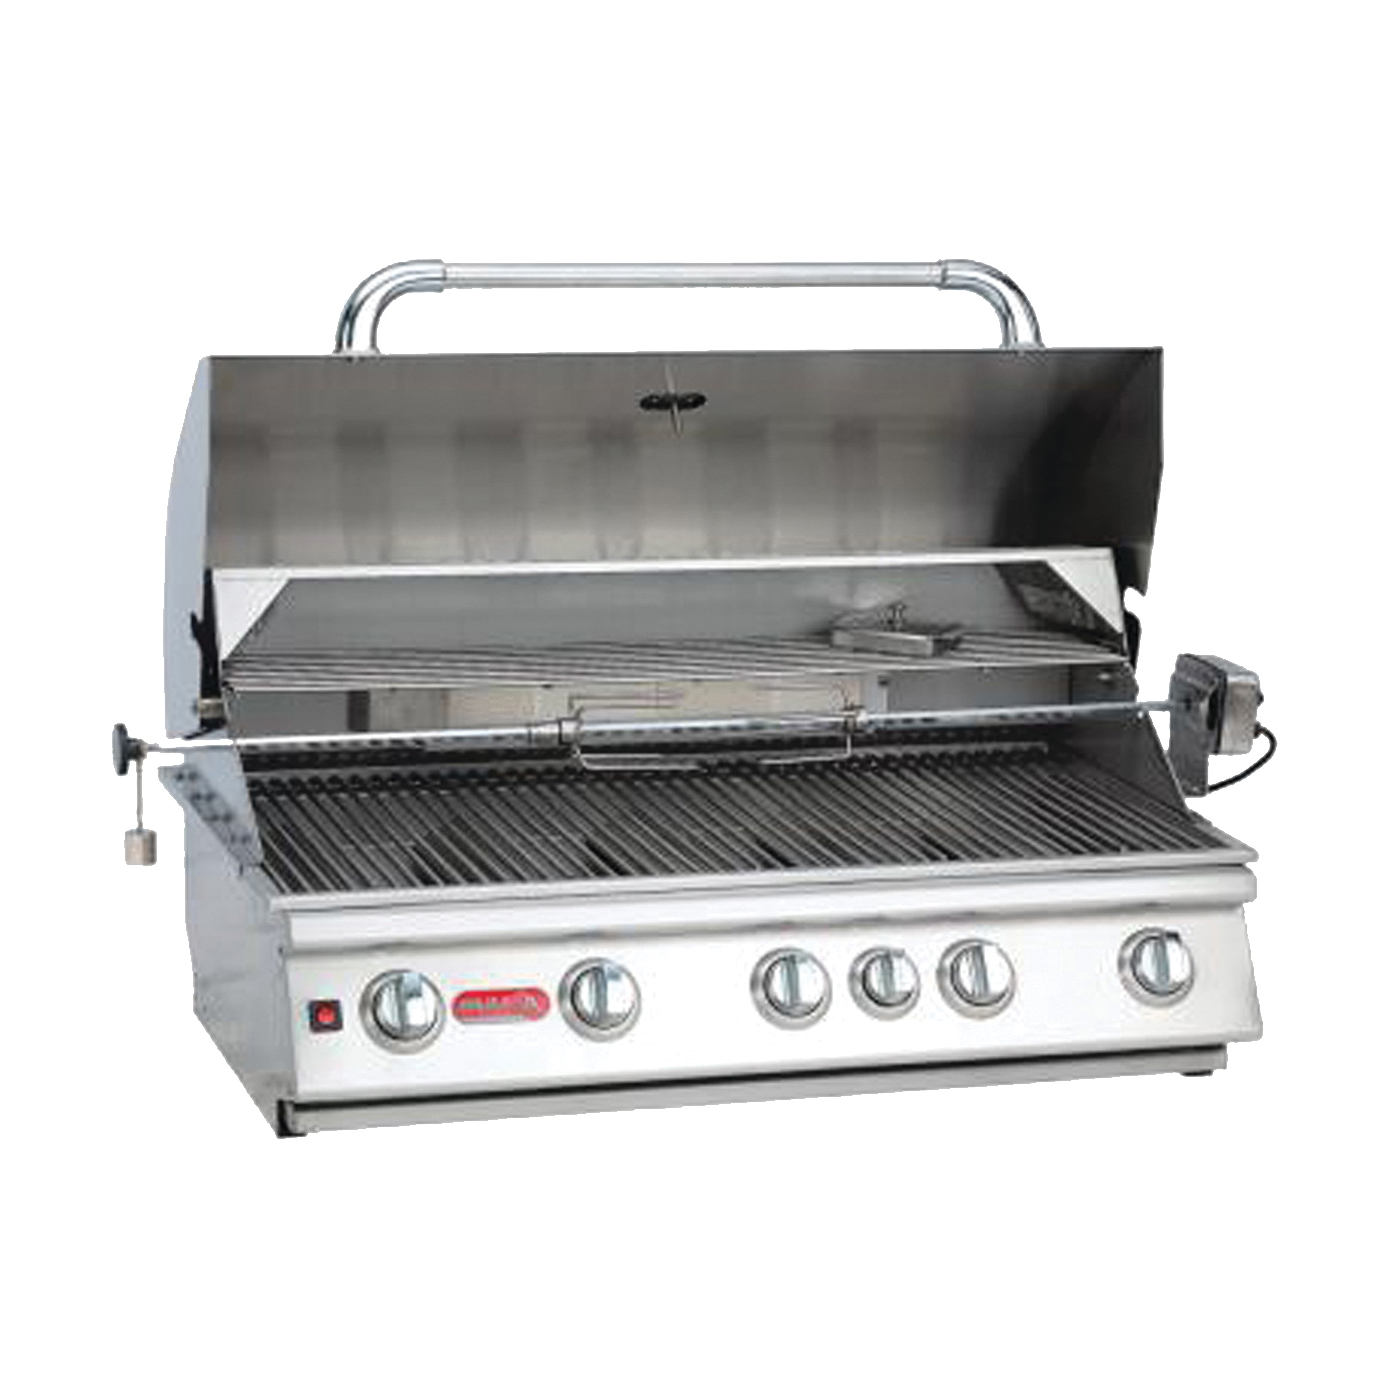 Picture of BULL Brahma 57569 Gas Grill Head, 90000 Btu BTU, Natural Gas, 5 -Burner, 266 sq-in Secondary Cooking Surface